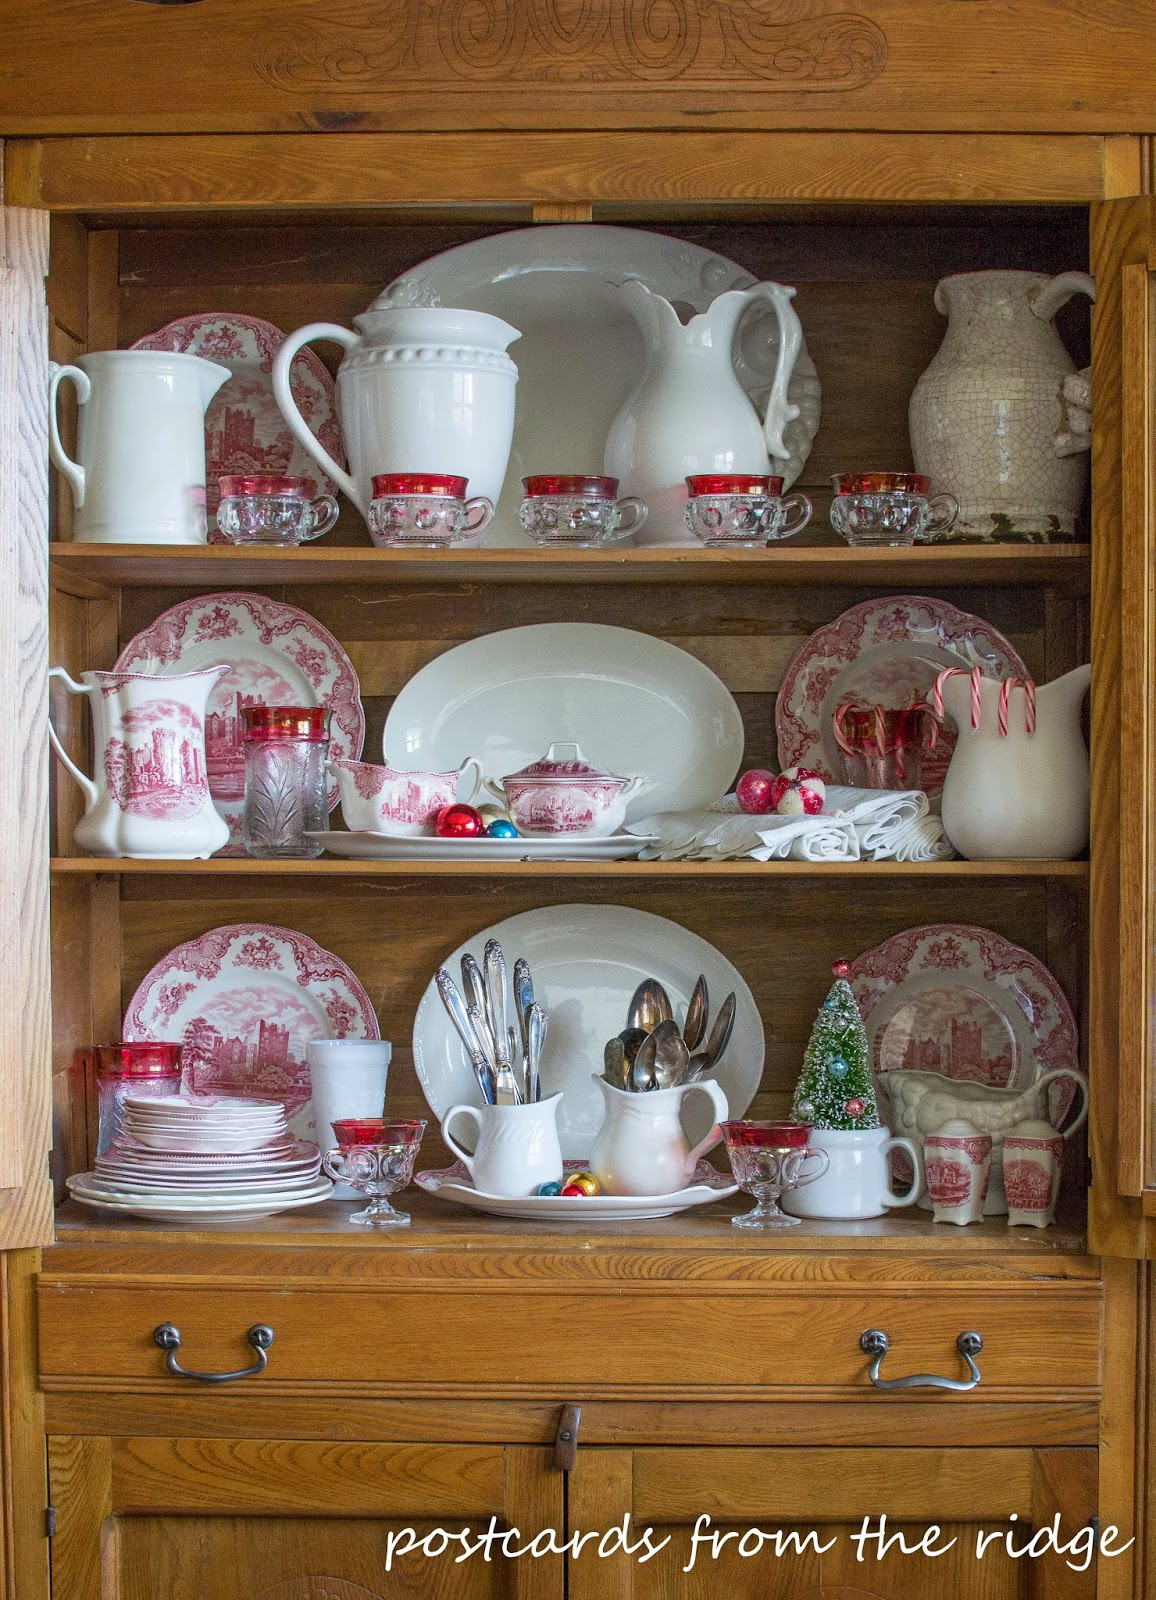 Ironstone pitchers and vintage dishes make a nice Christmas display